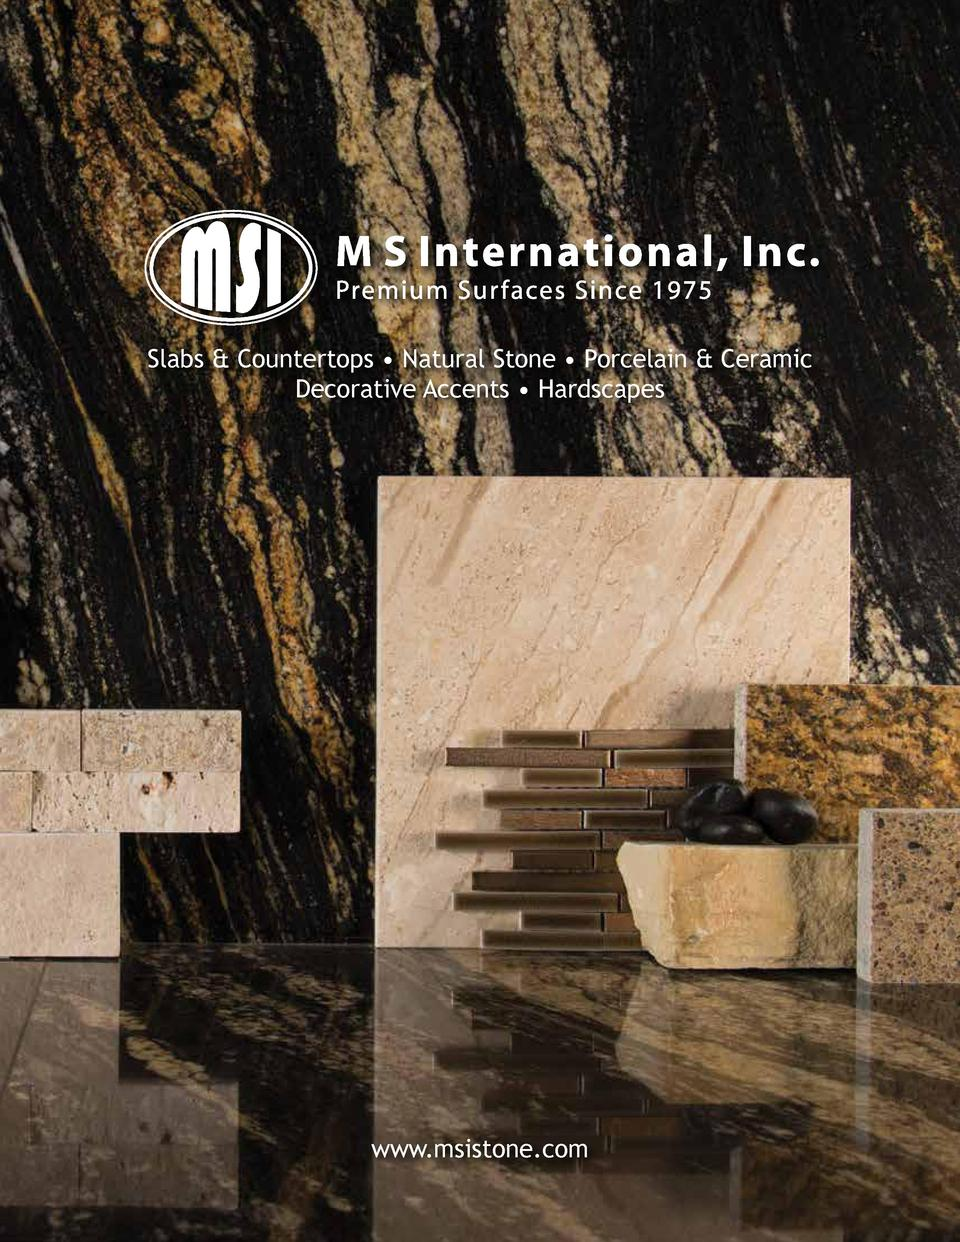 Slabs   Countertops     Natural Stone     Porcelain   Ceramic Decorative Accents     Hardscapes  www.msistone.com